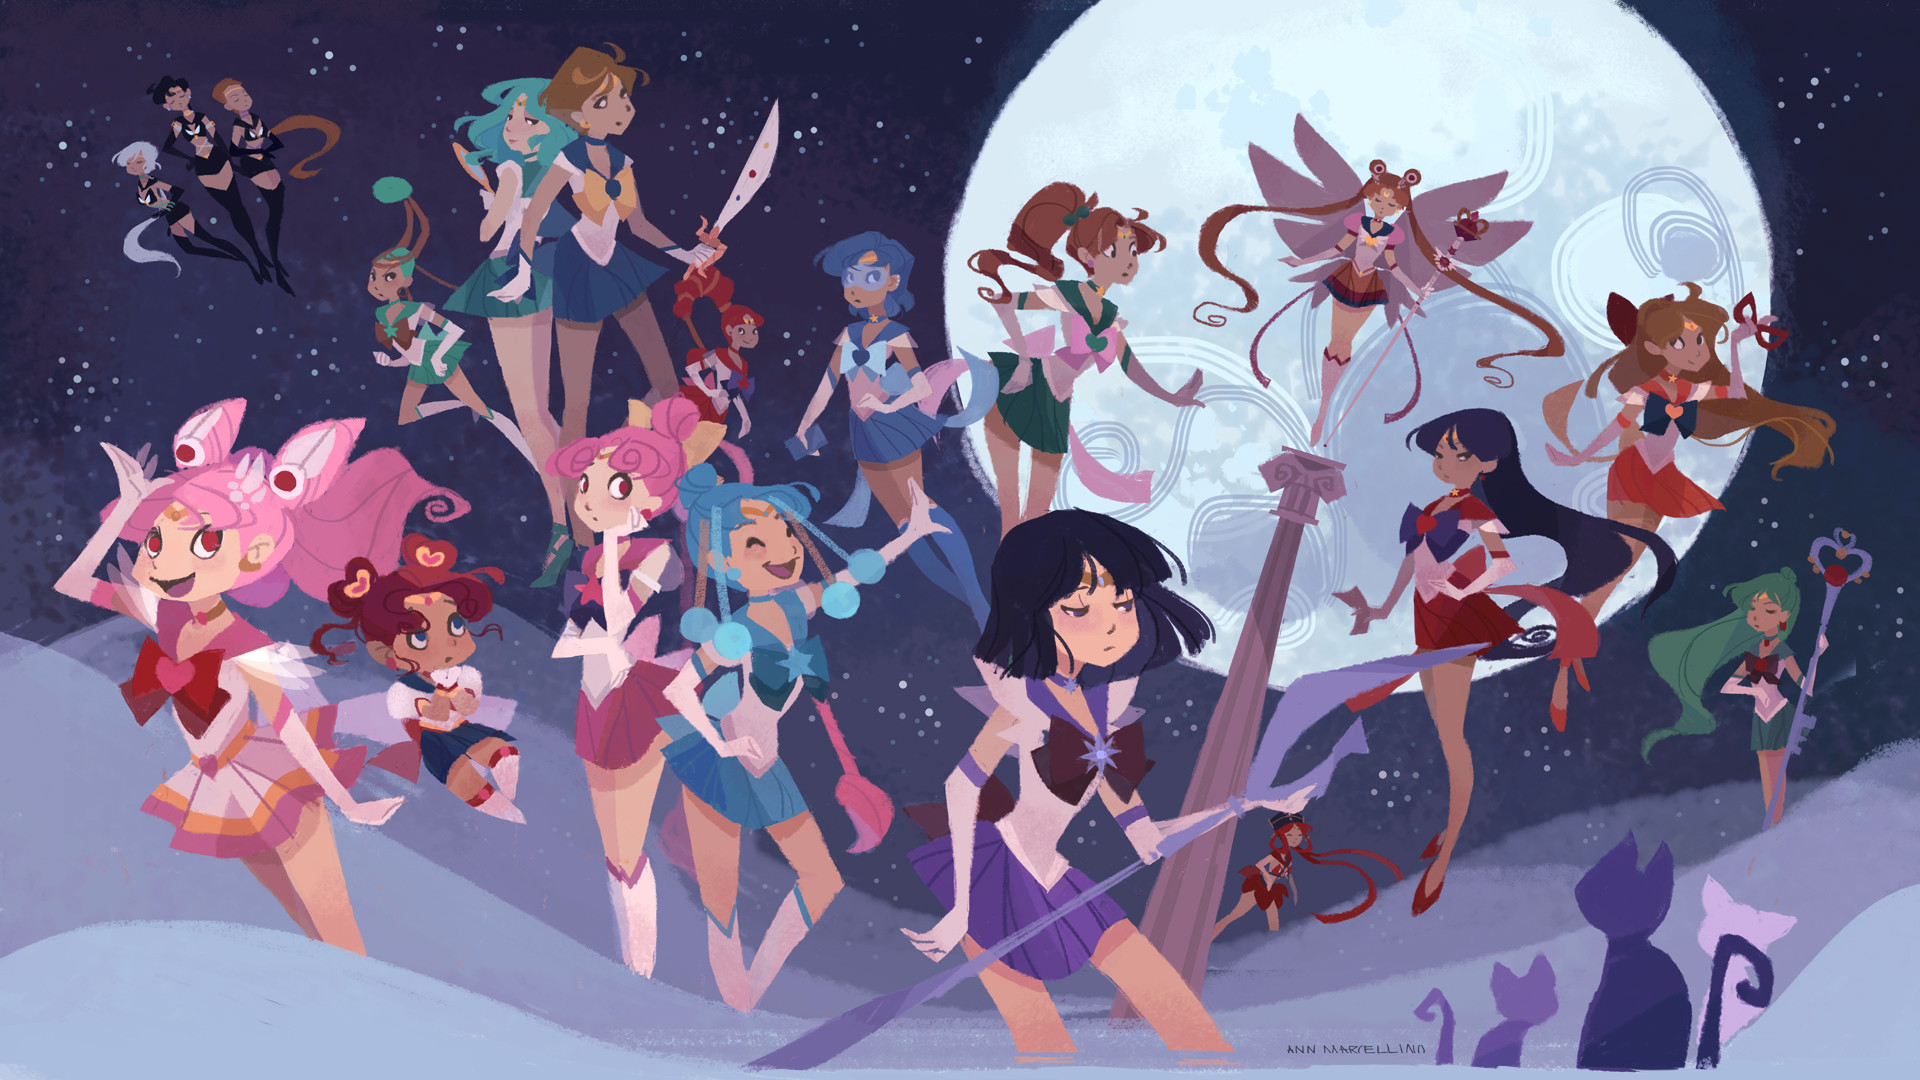 1920x1080 Sailor Soldiers Wallpapers by nna Sailor Soldiers Wallpapers by nna